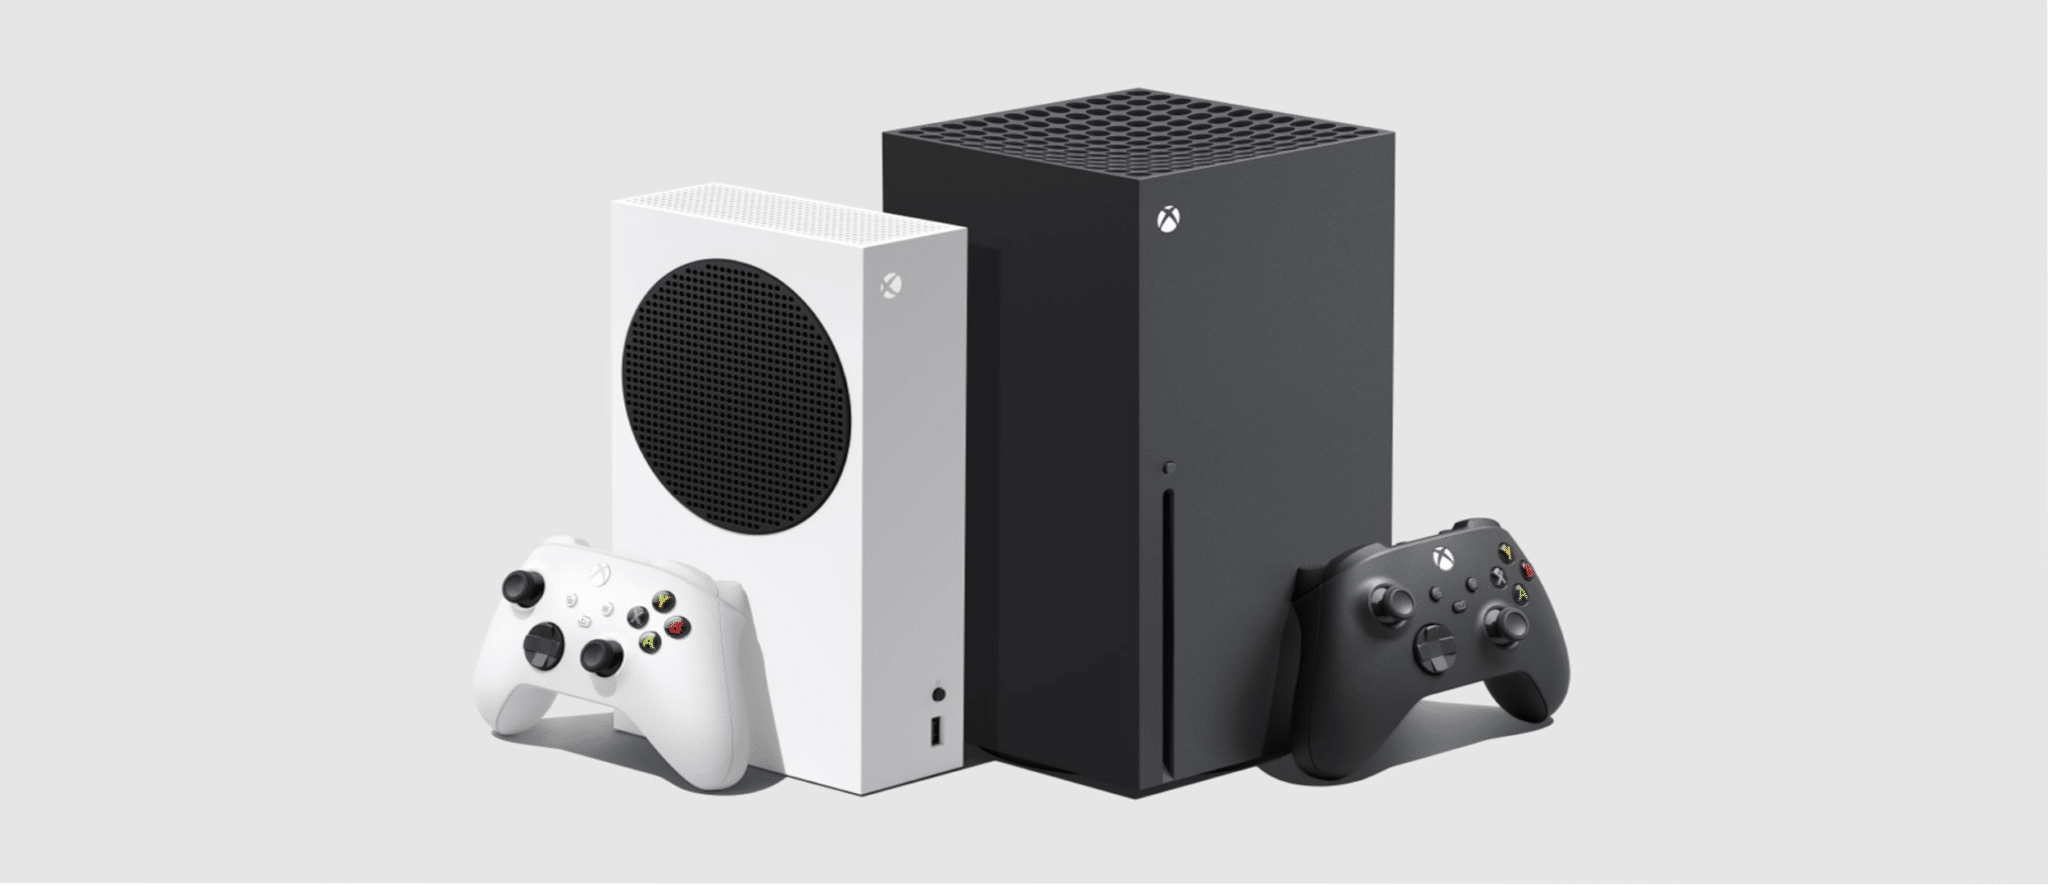 Xbox Series X Launches With 802GB of Useable SSD Storage